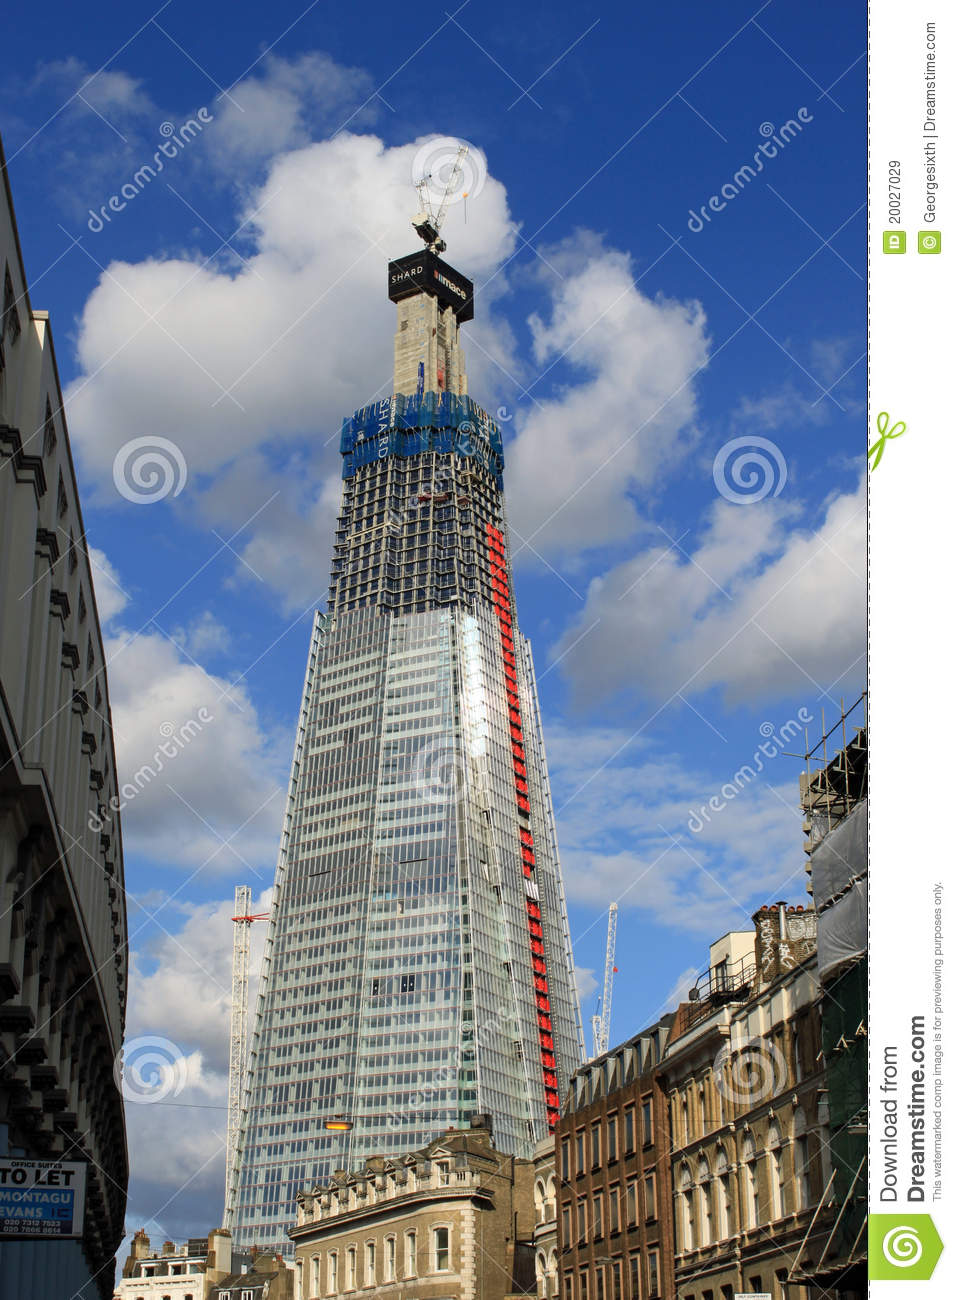 Le tesson londres gratte ciel en construction image stock ditorial imag - Construction gratte ciel ...